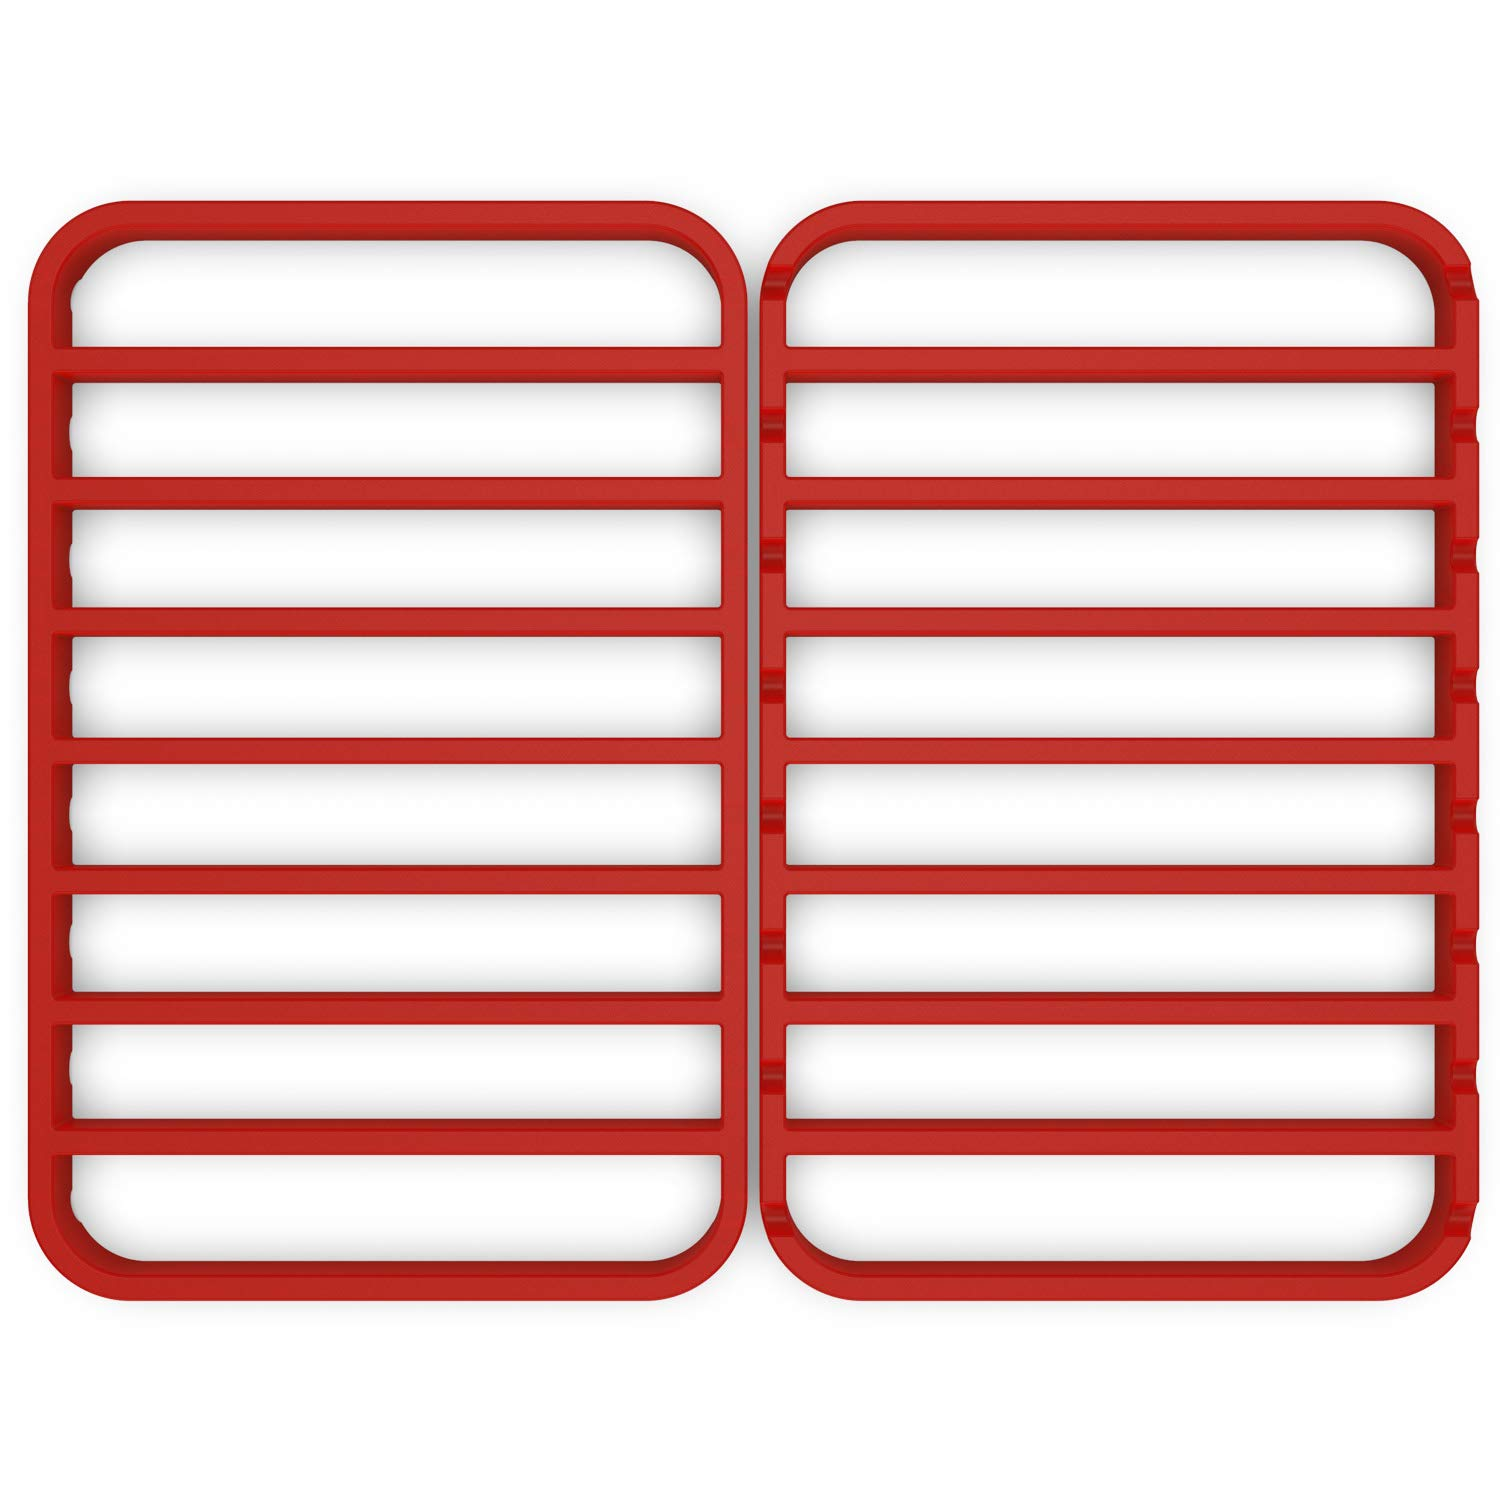 STAN BOUTIQUE Nonstick Baking/Cooling/Roasting Racks for Oven - (12'' X 17'') Silicone, Red